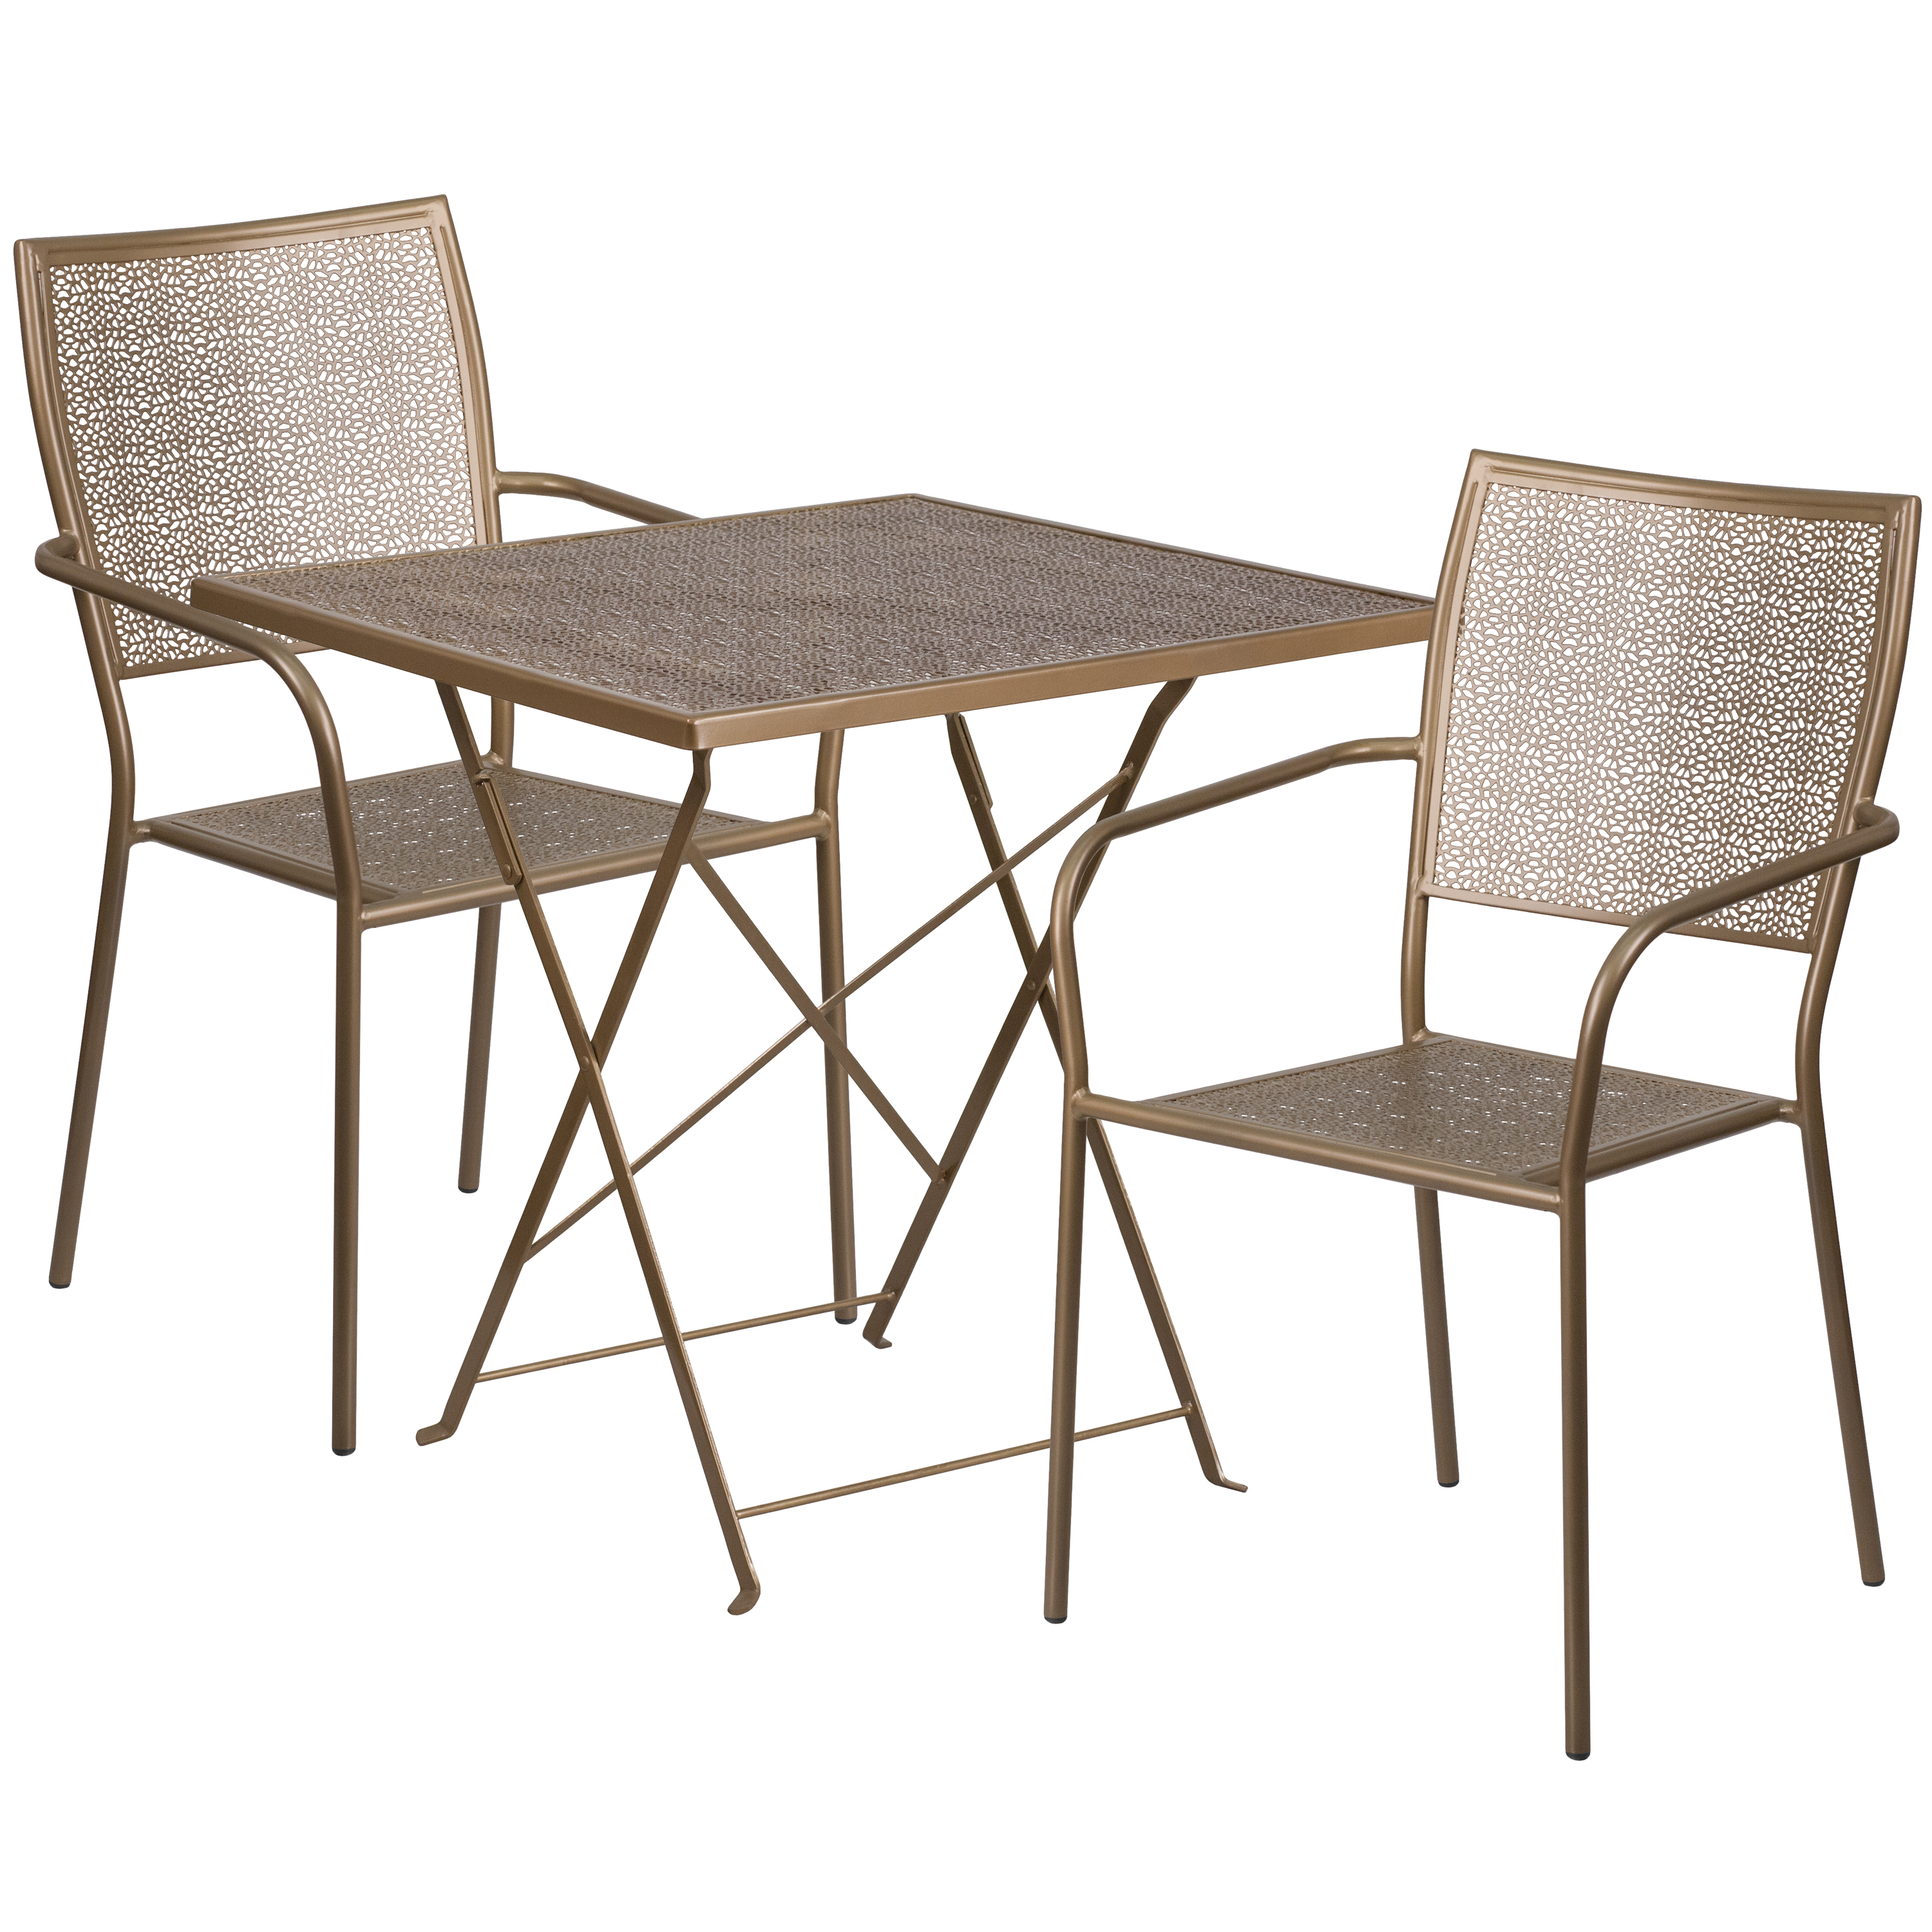 Flash Furniture 28'' Square Indoor-Outdoor Steel Folding Patio Table Set with 2 Square Back Chairs, Multiple Colors